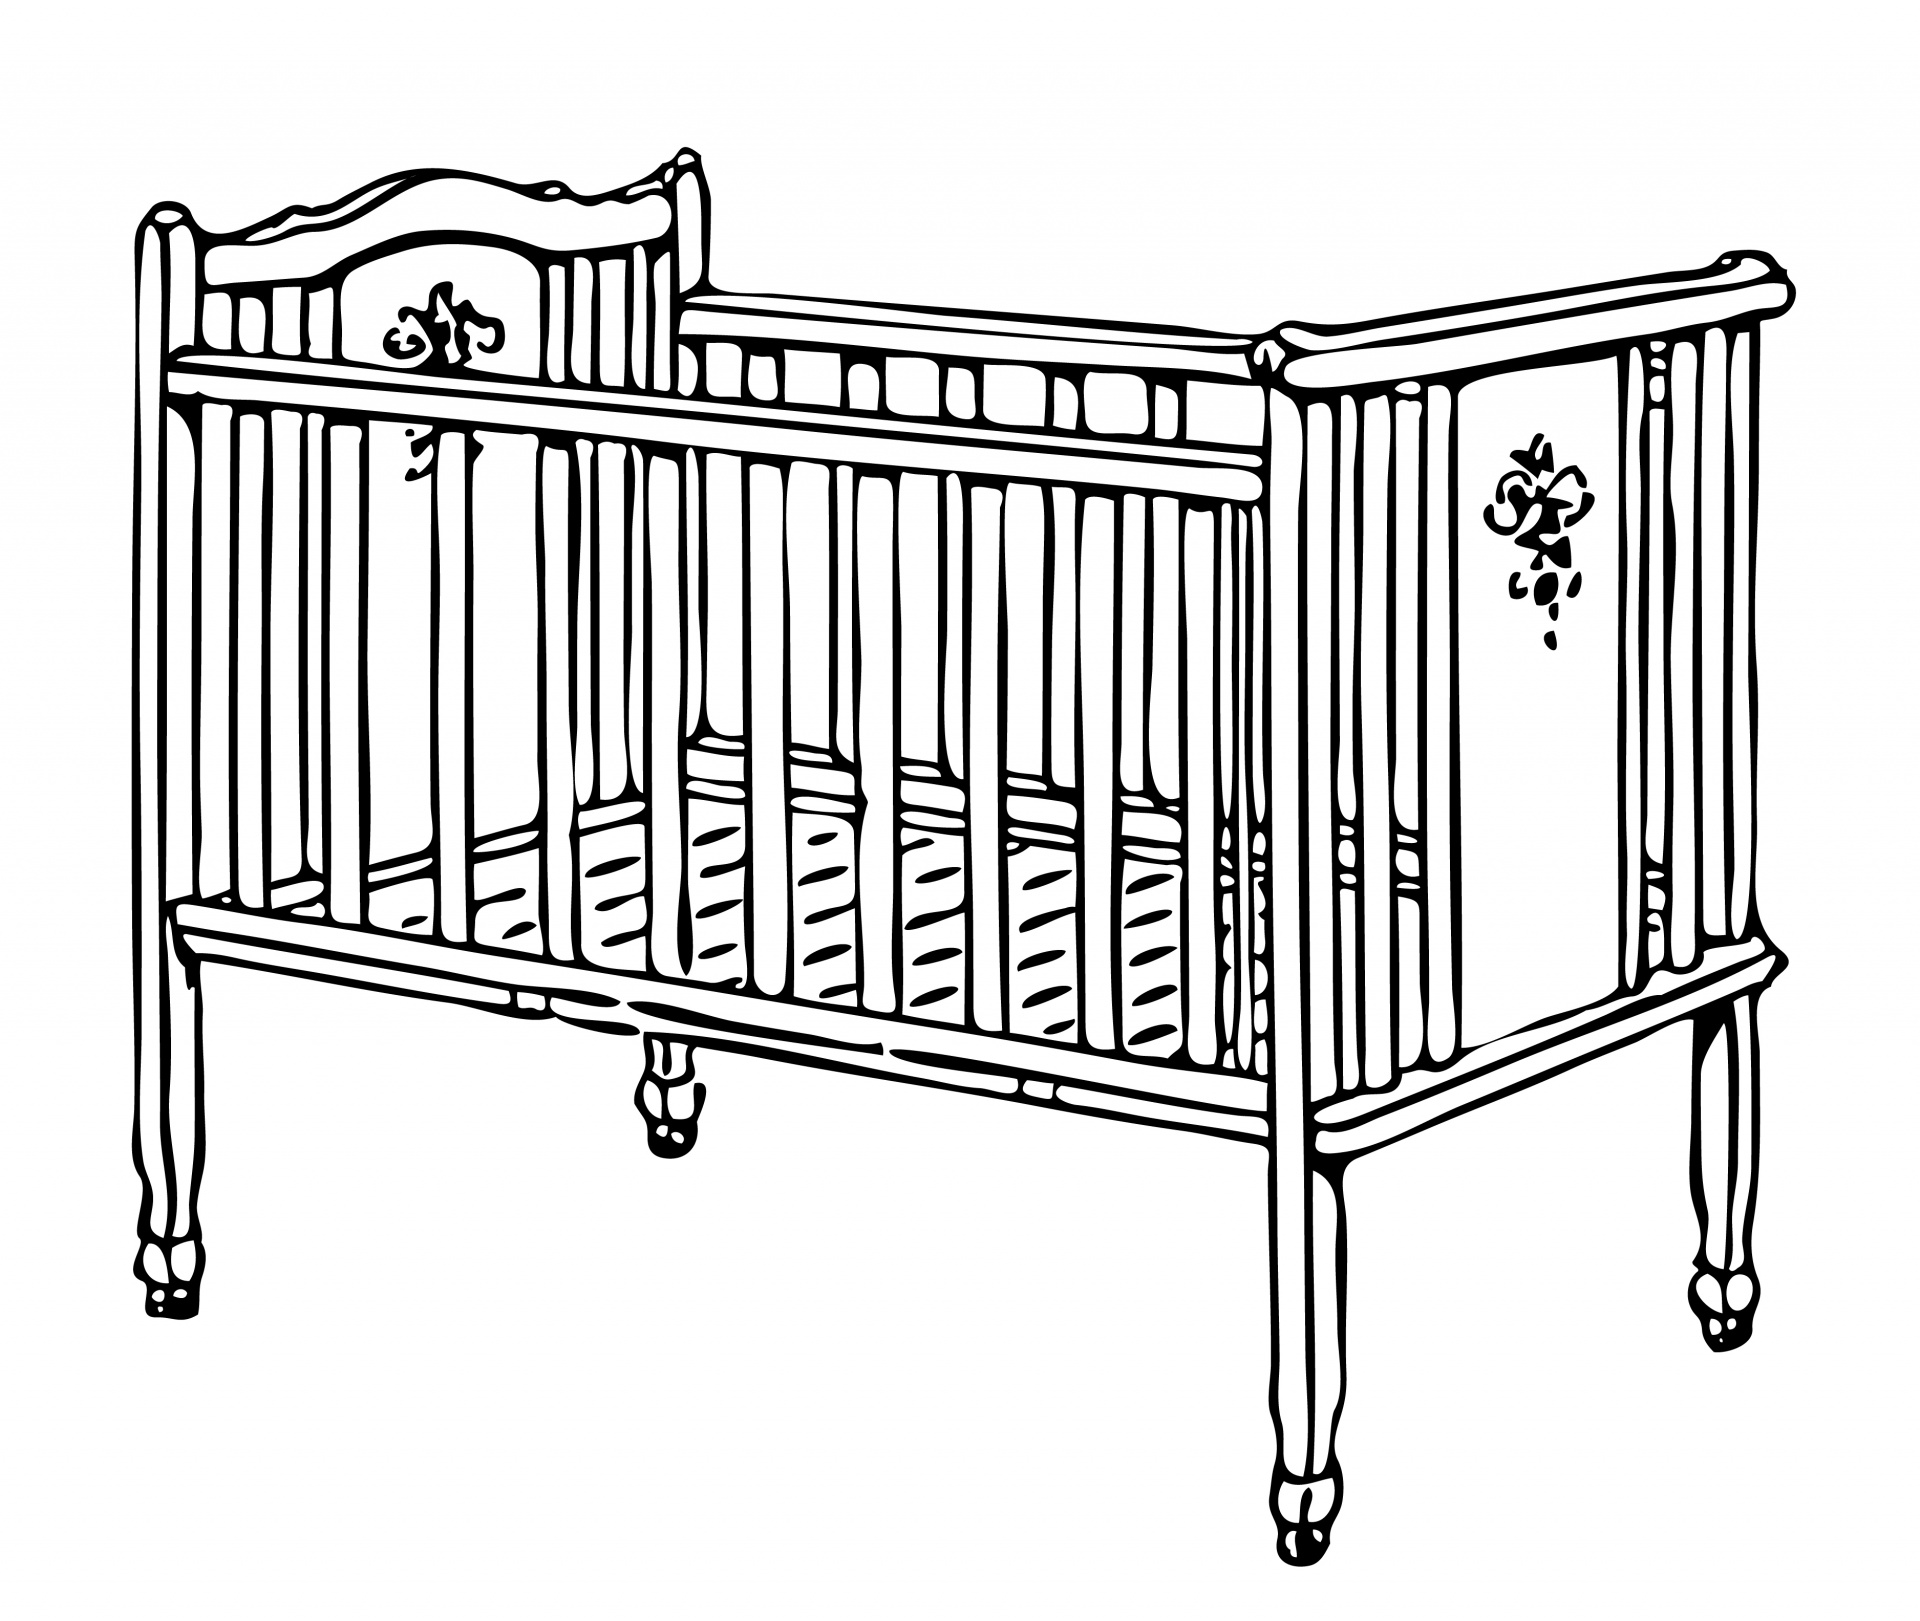 Cot illustration free stock. Crib clipart